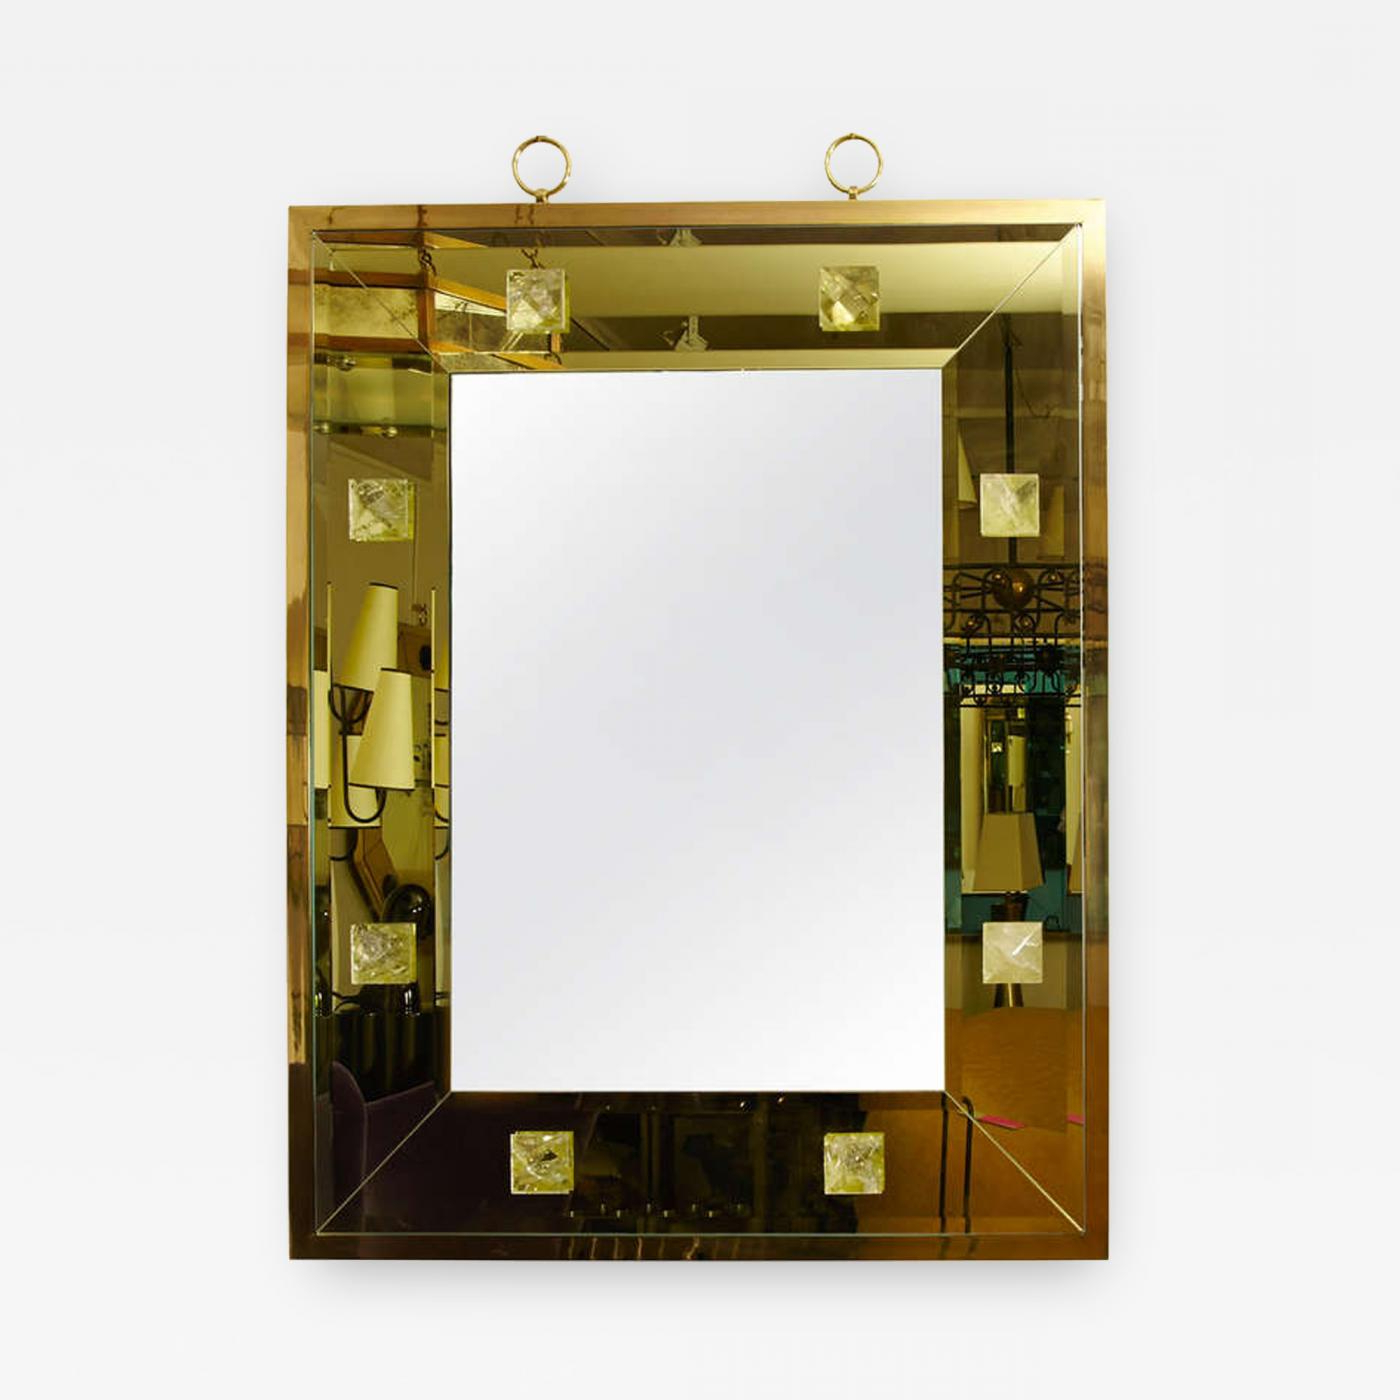 Dandre Wall Mirrors Throughout 2020 Andre Hayat – Andre Hayat Pale Yellow Rectangular Mirror (View 8 of 20)